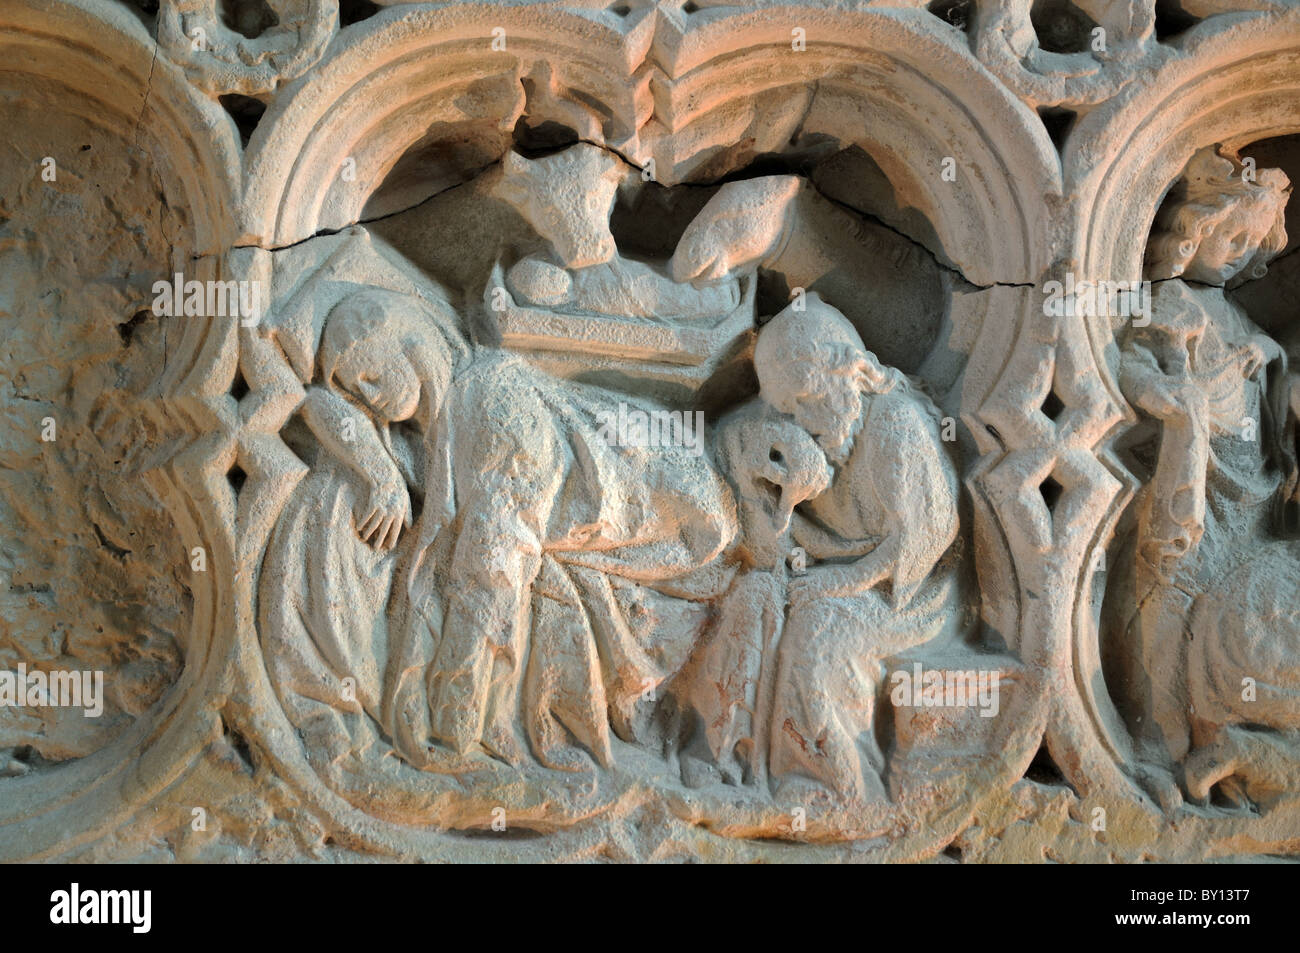 Stone relief carvings in the abbaye de fontenay abbey burgundy